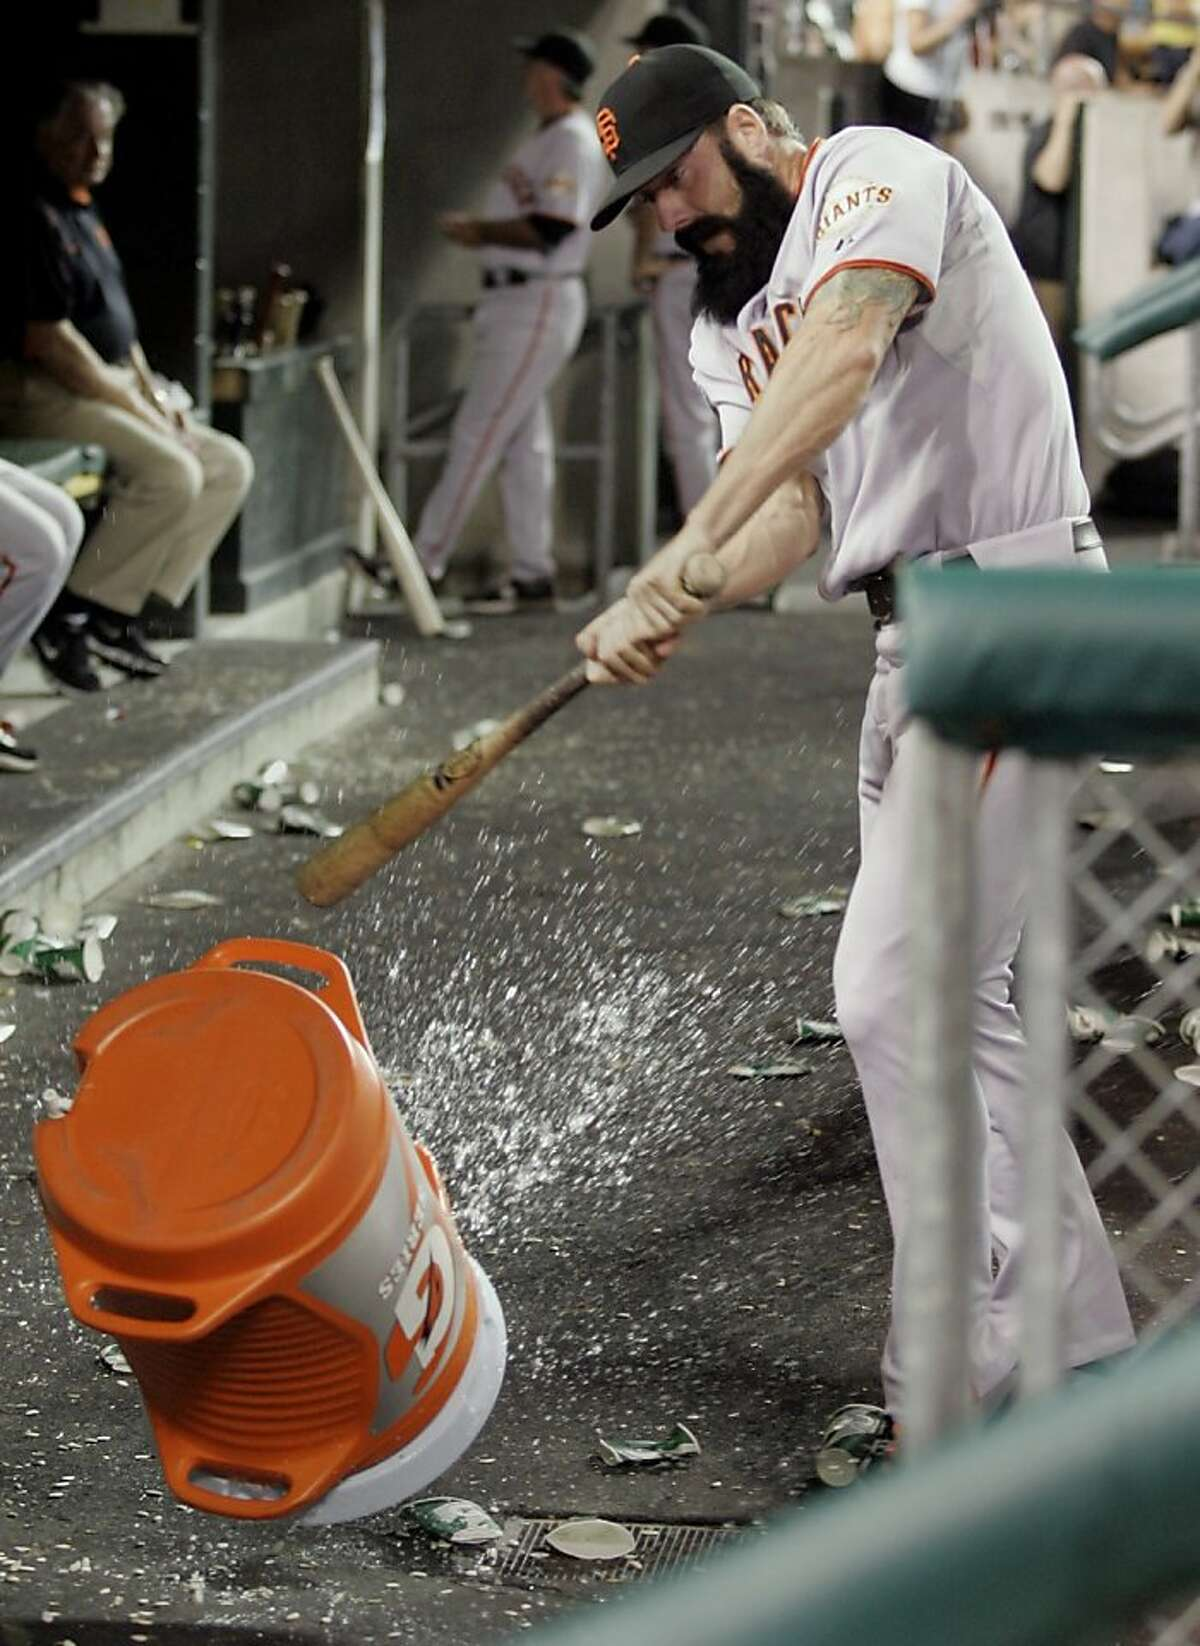 San Francisco Giants reliever Brian Wilson takes a bat to a water cooler after being pulled from a interleague baseball game against the Detroit Tigers in the ninth inning Friday, July 1, 2011 in Detroit. Wilson was pulled after giving up a RBI-single toDetroit's Brandon Inge. The Giants defeated the Tigers 4-3.